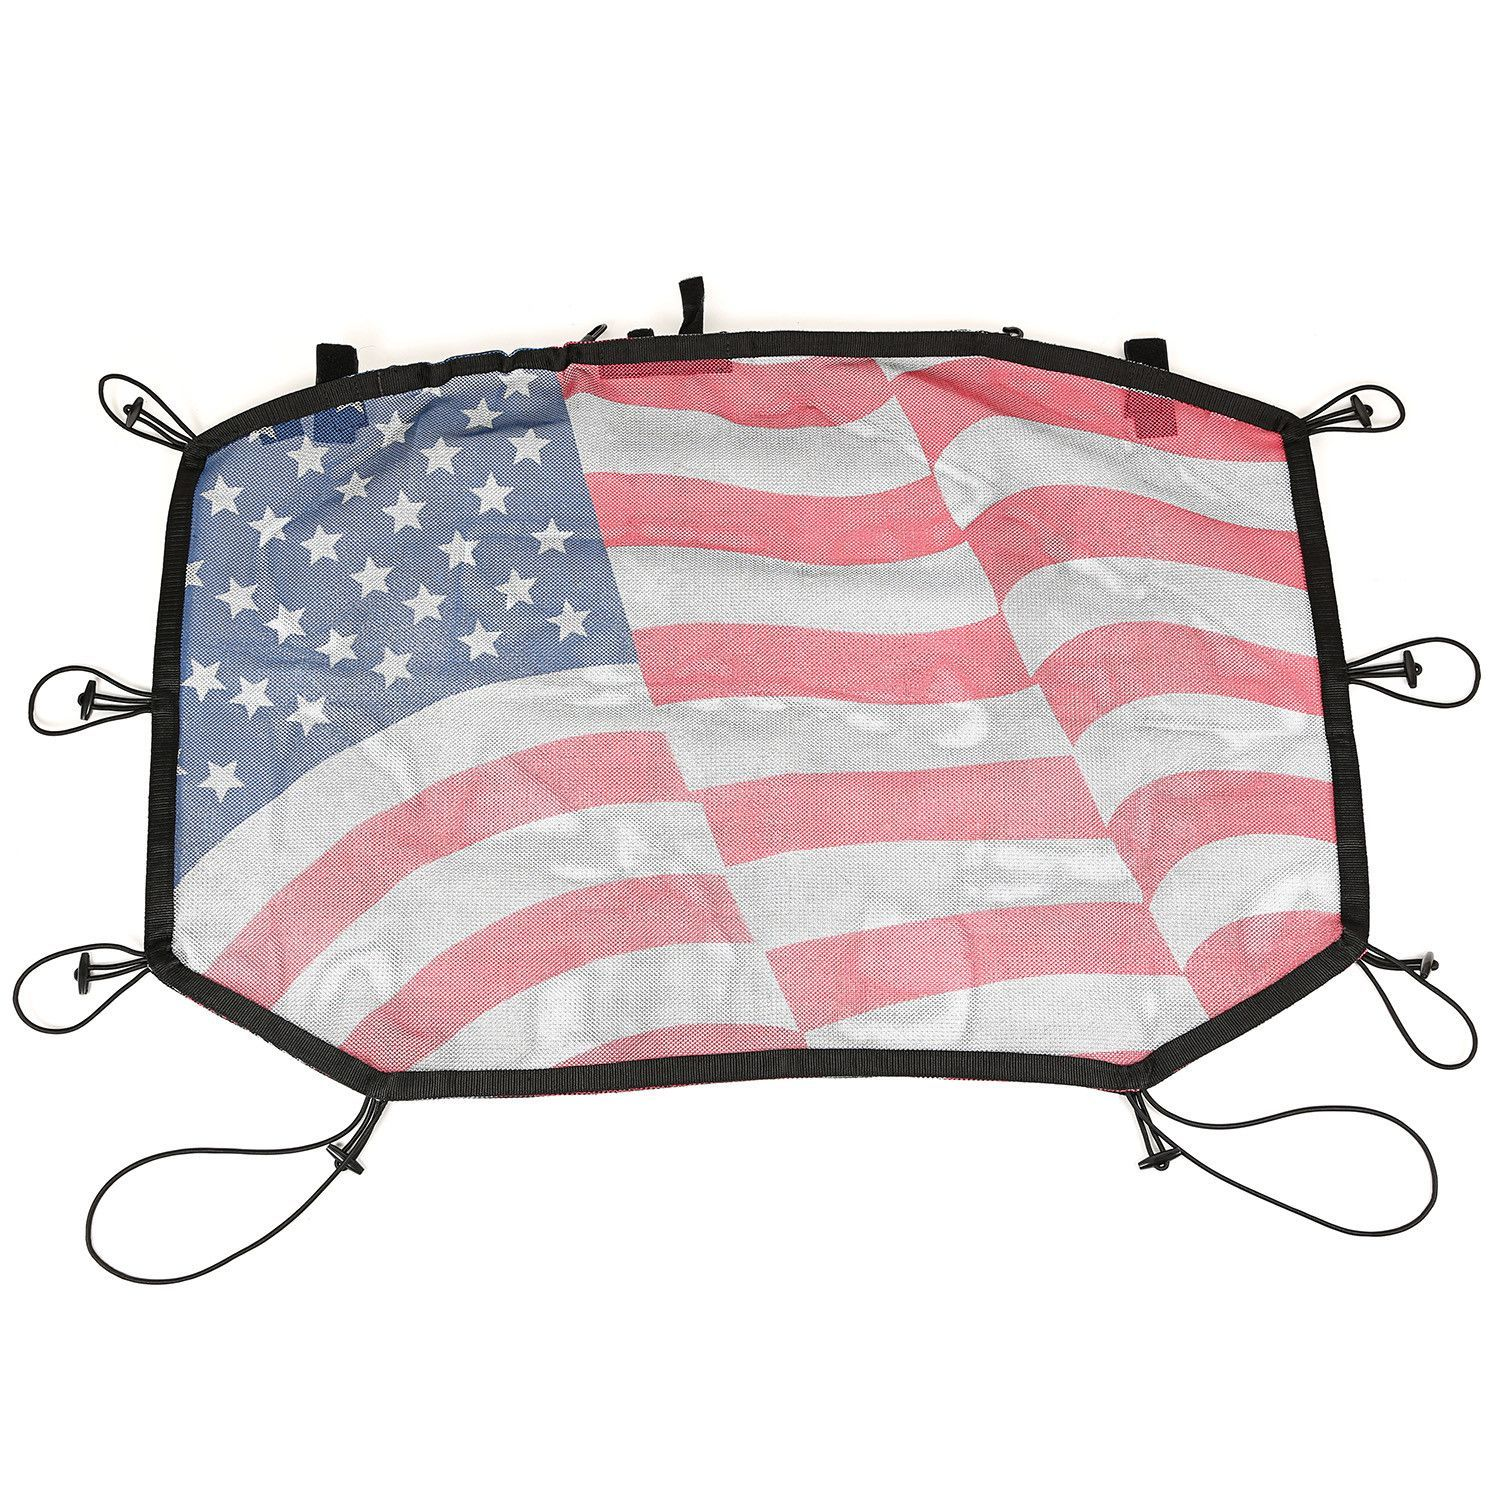 Eclipse Sun Shade Front American Flag 07 16 Jeep Wrangler Jk Jeep Wrangler Jeep Wrangler Jk Jeep